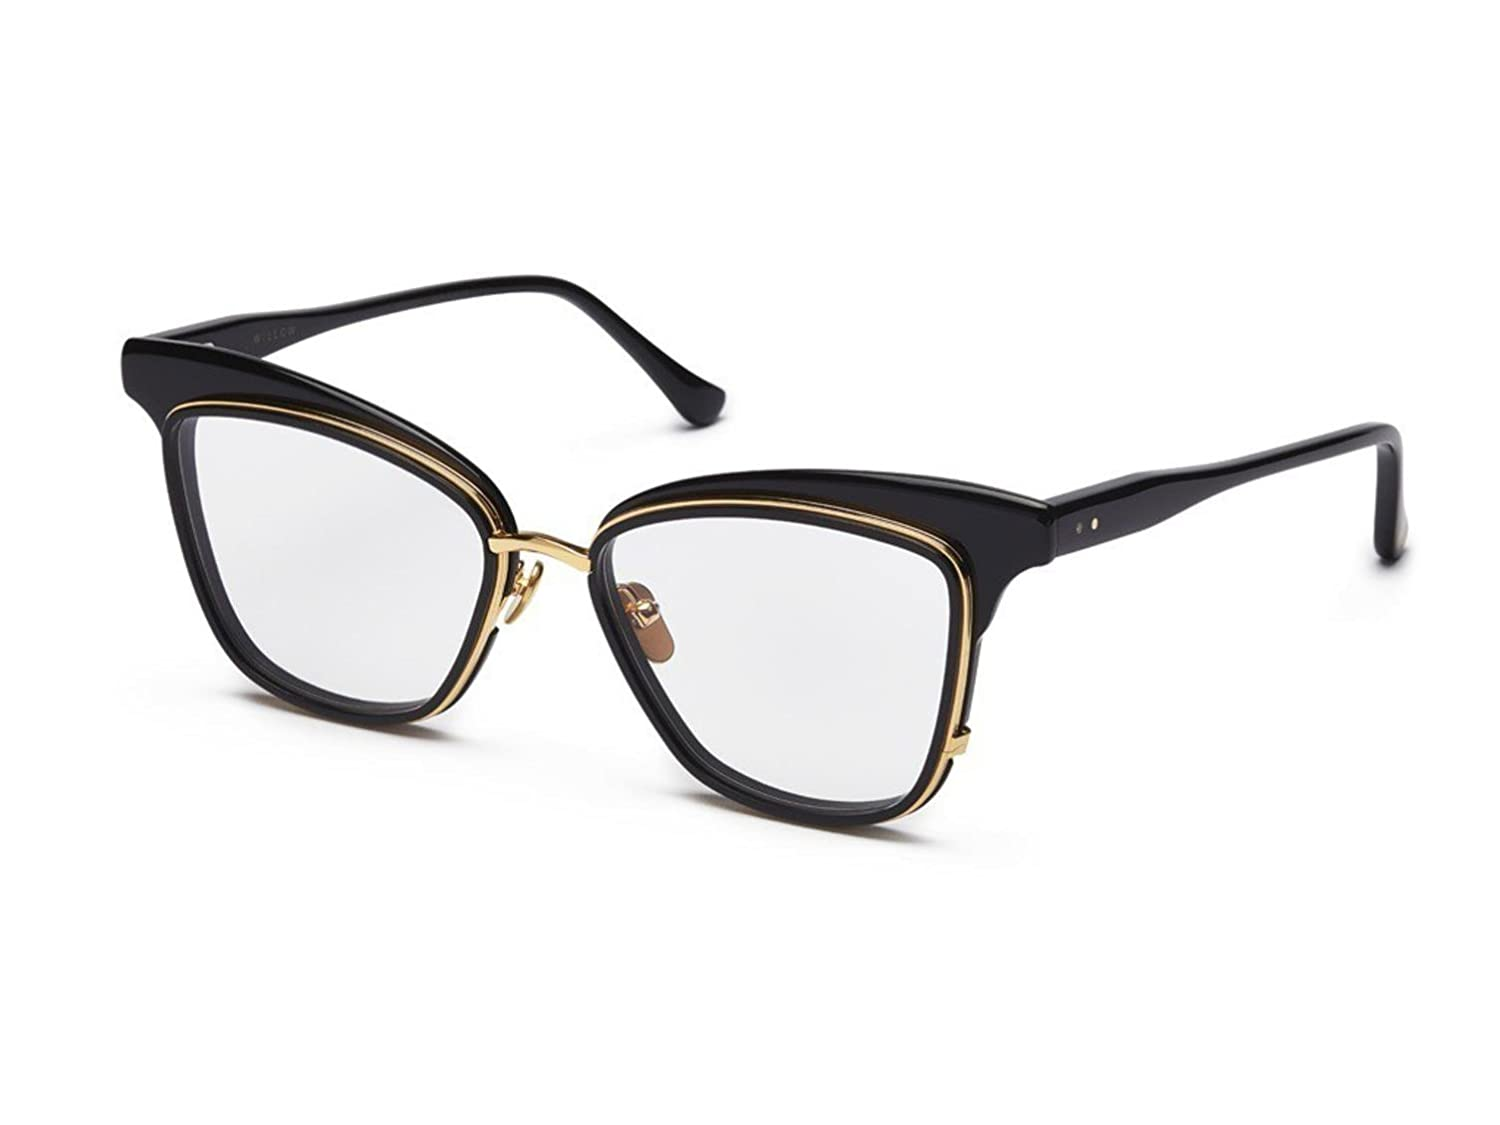 121379294cb Eyeglasses Dita WILLOW DRX 3040 A-BLK-GLD Black-18K Gold at Amazon Men s  Clothing store